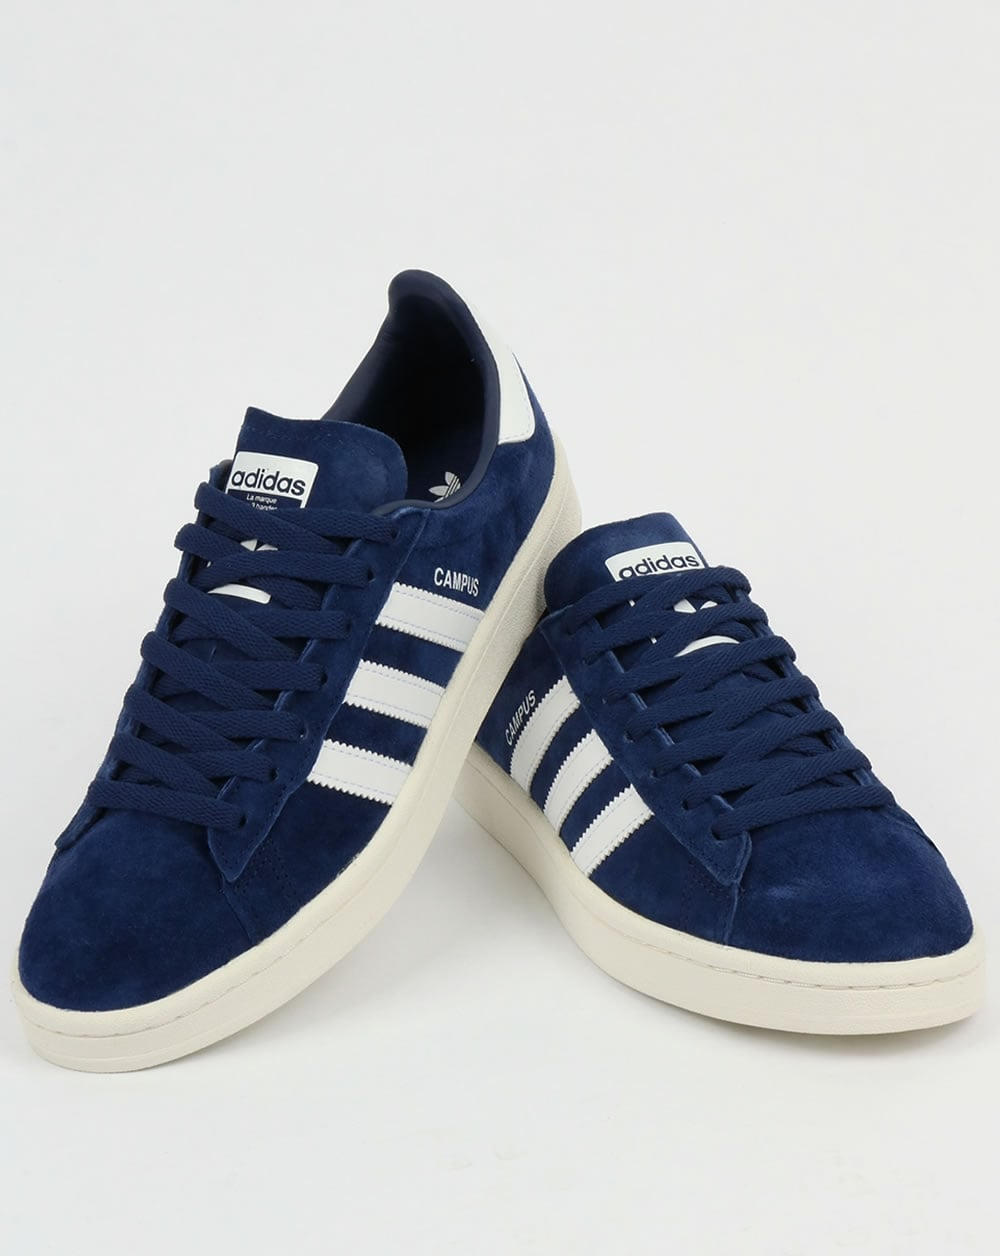 69772e5ab95b adidas Trainers Adidas Campus Trainers Rich Navy White